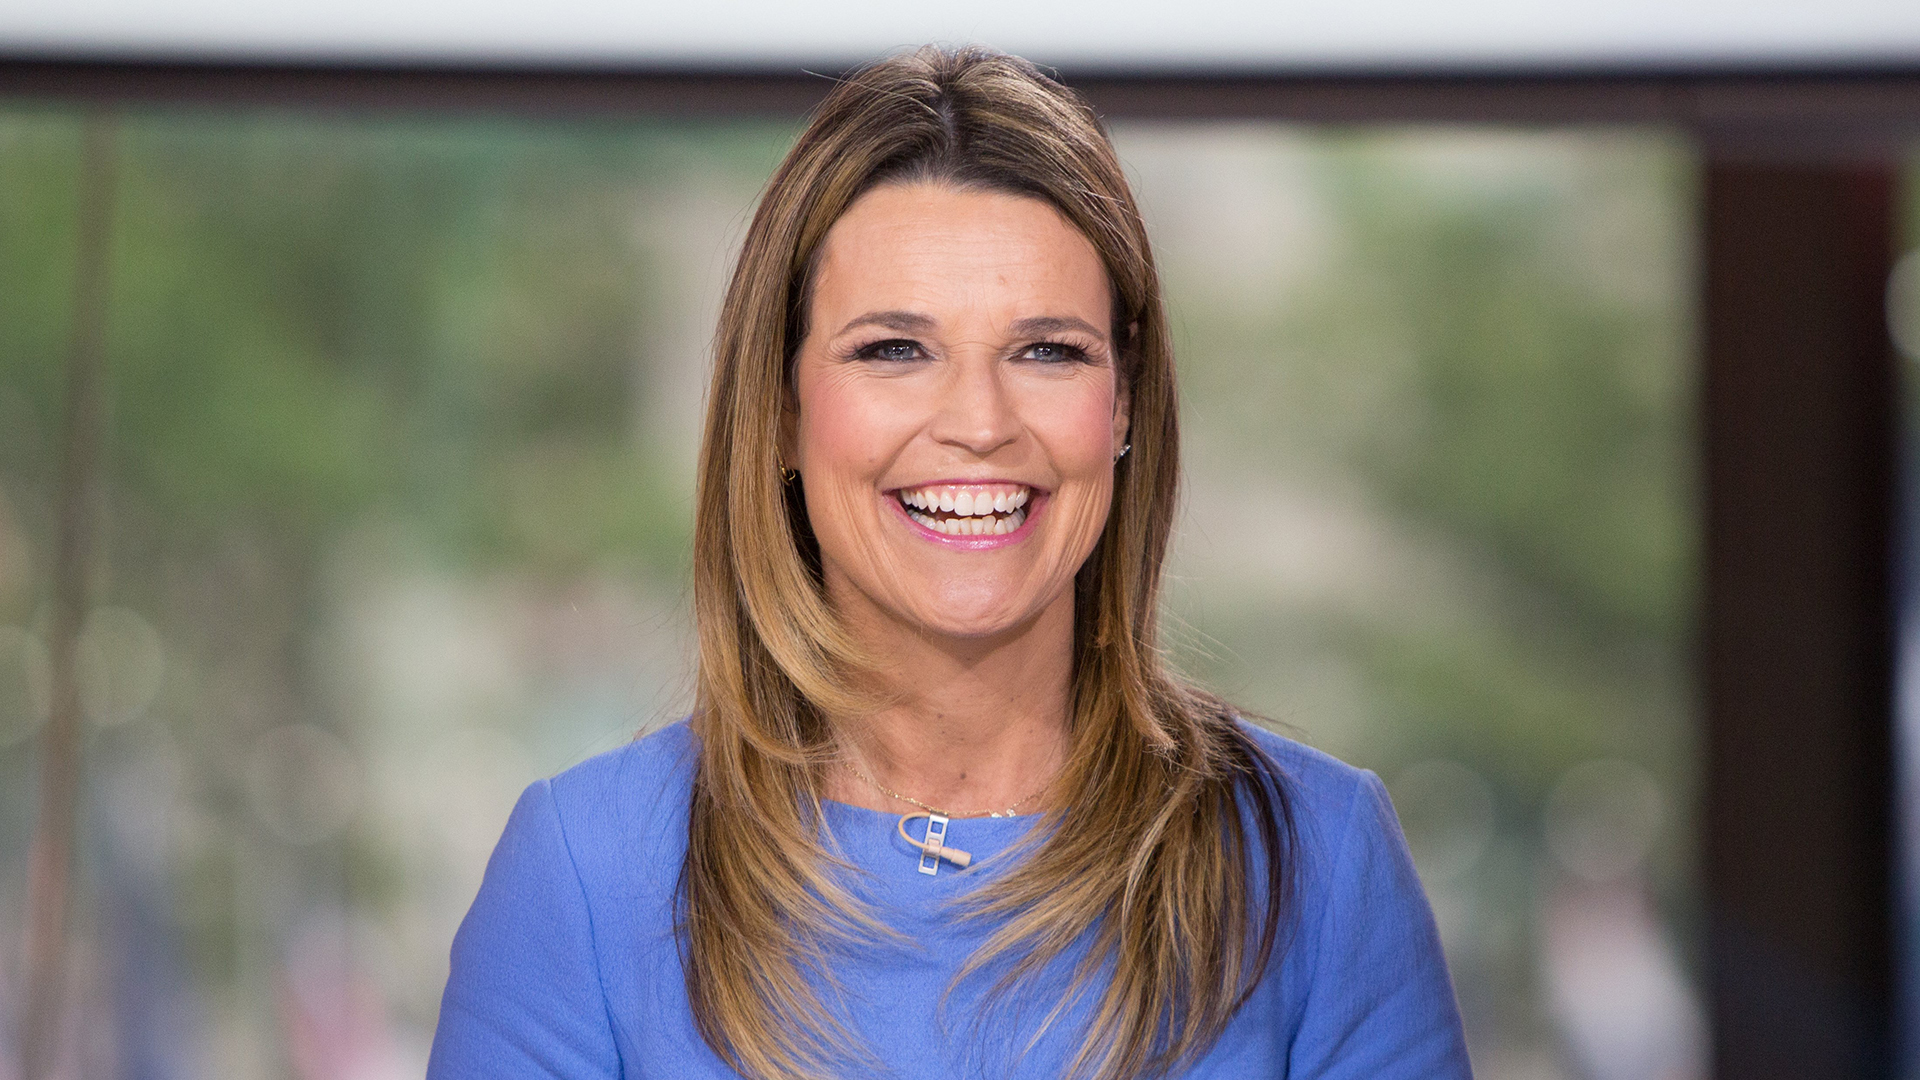 T Style Hair Salon Minneapolis: Savannah Guthrie Shows Off Pink Hair, And We're Obsessed